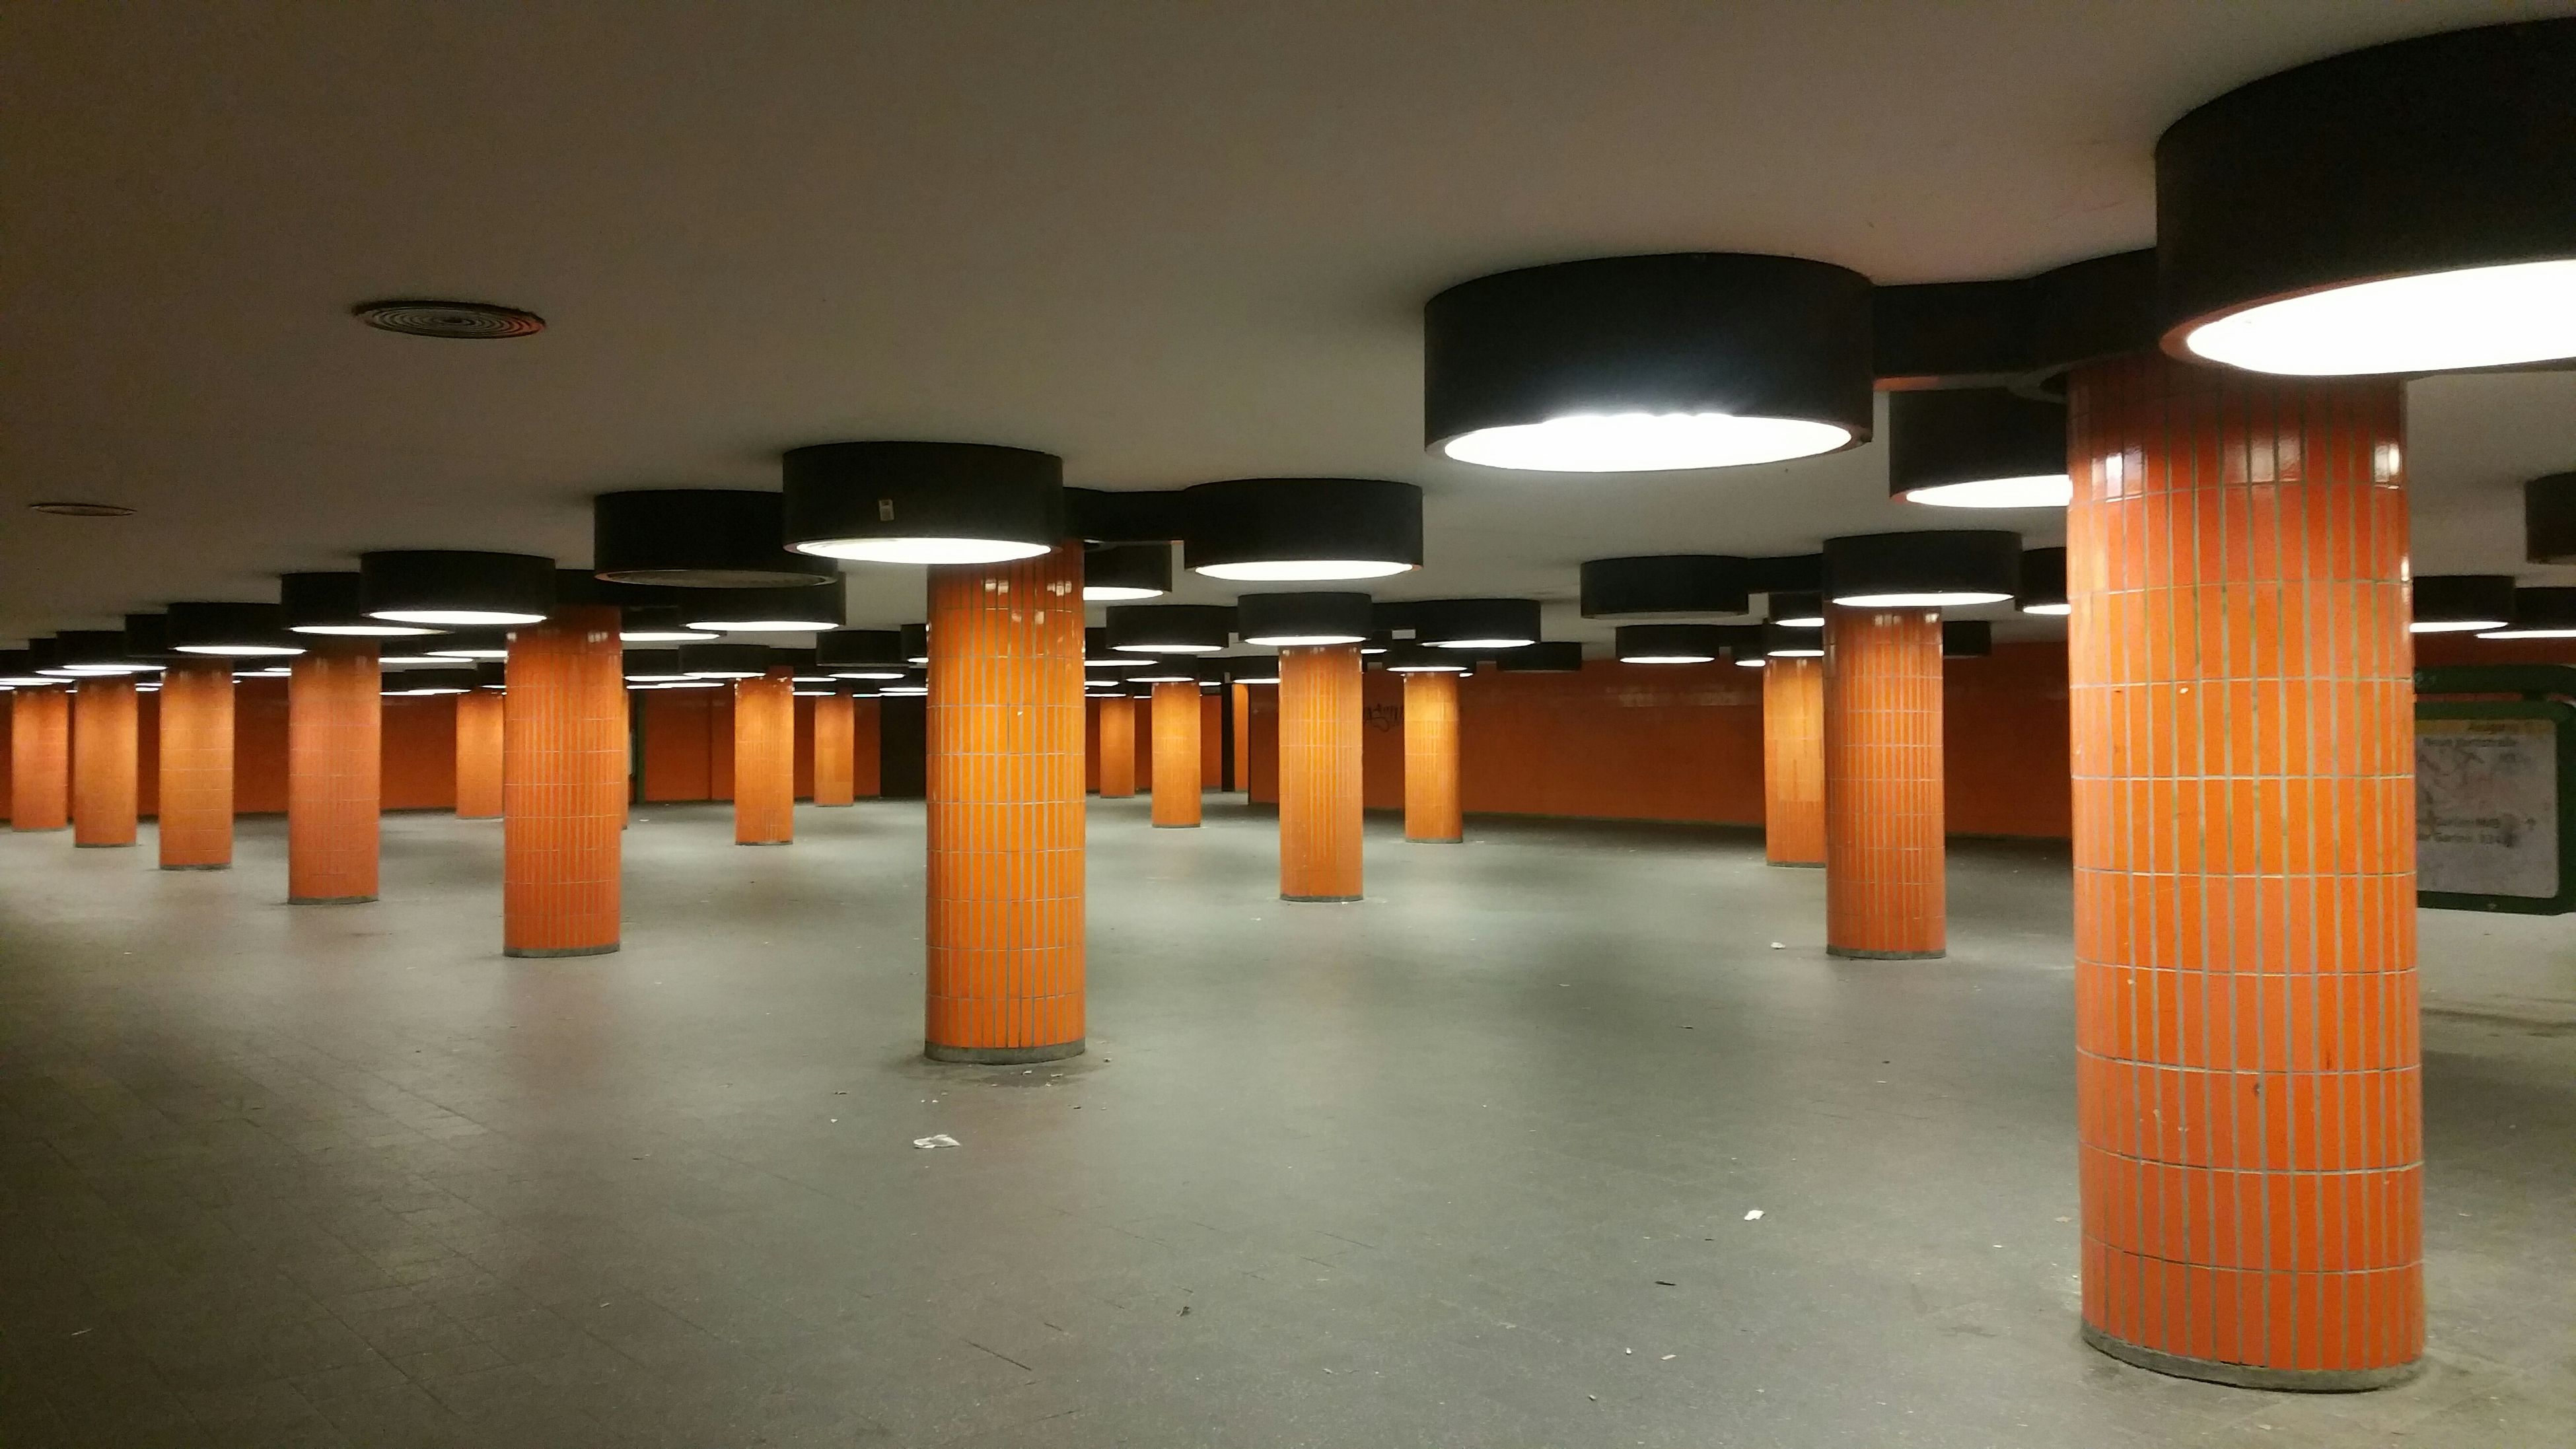 indoors, illuminated, in a row, built structure, architecture, architectural column, empty, column, corridor, lighting equipment, flooring, the way forward, ceiling, absence, pillar, repetition, diminishing perspective, orange color, arch, railing